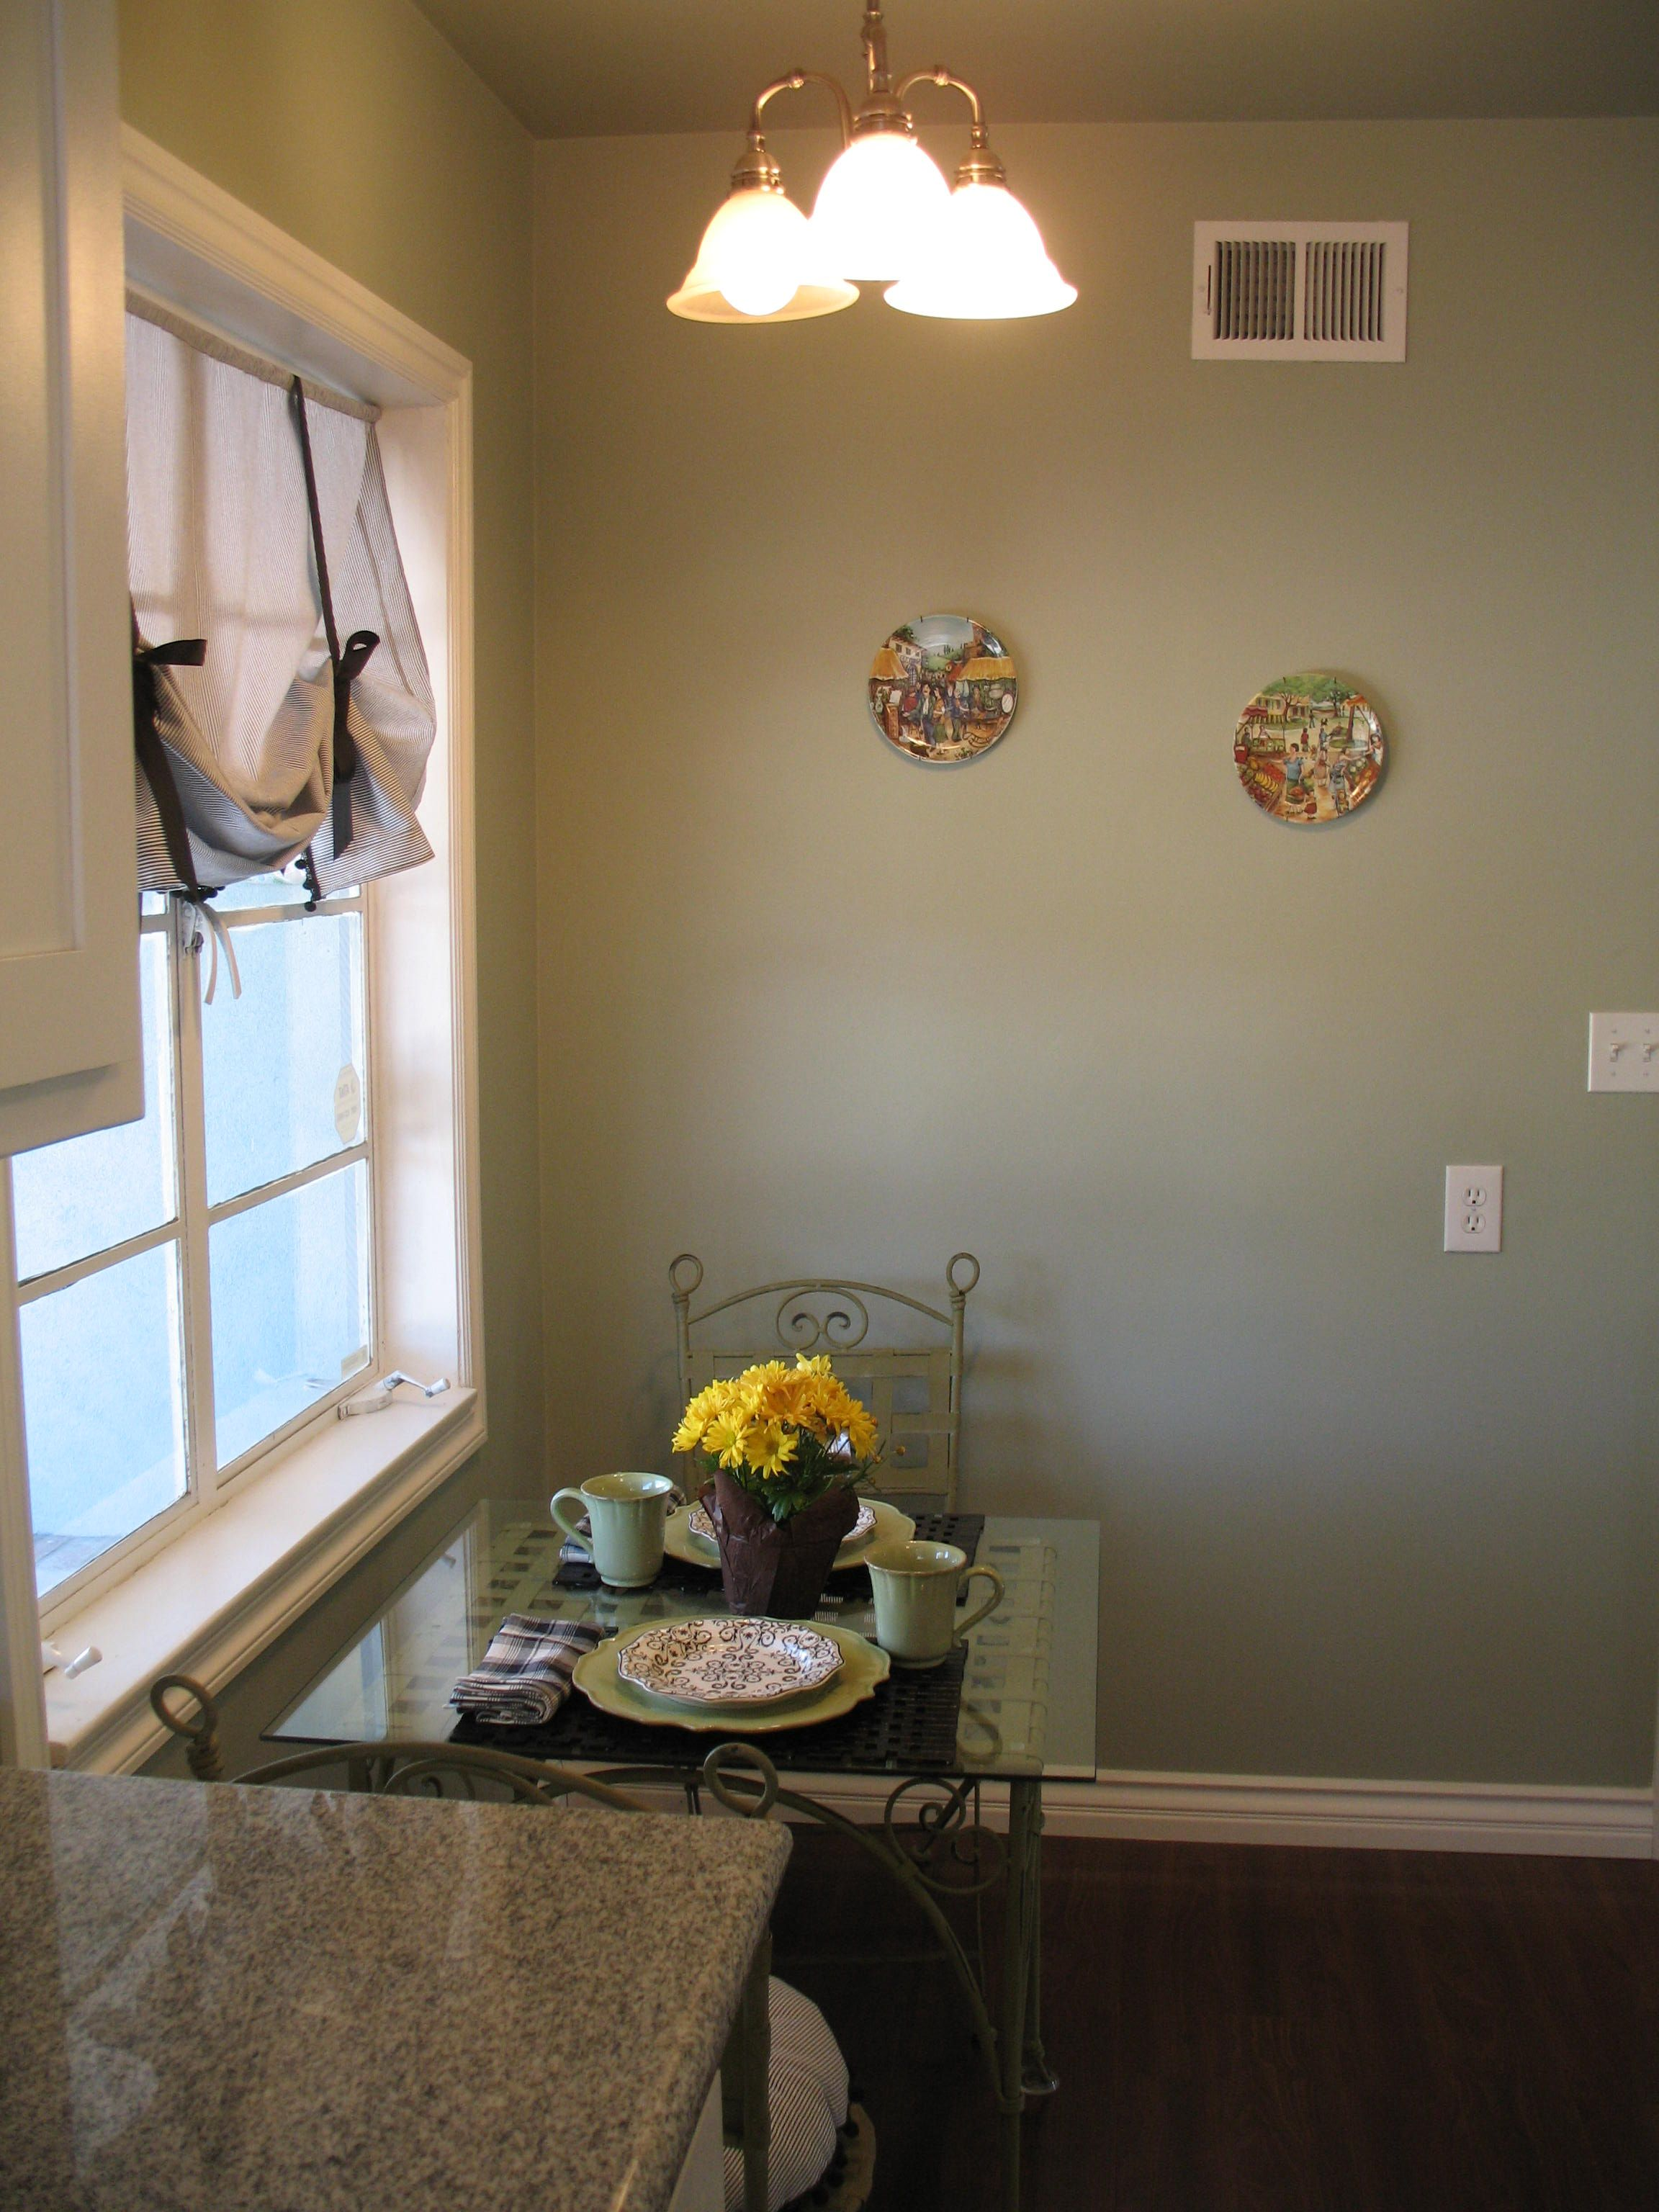 Kitchen after remodel.  I made simple curtains and matching cushions, added some decor and a bistro table adding some glass I found at the property.